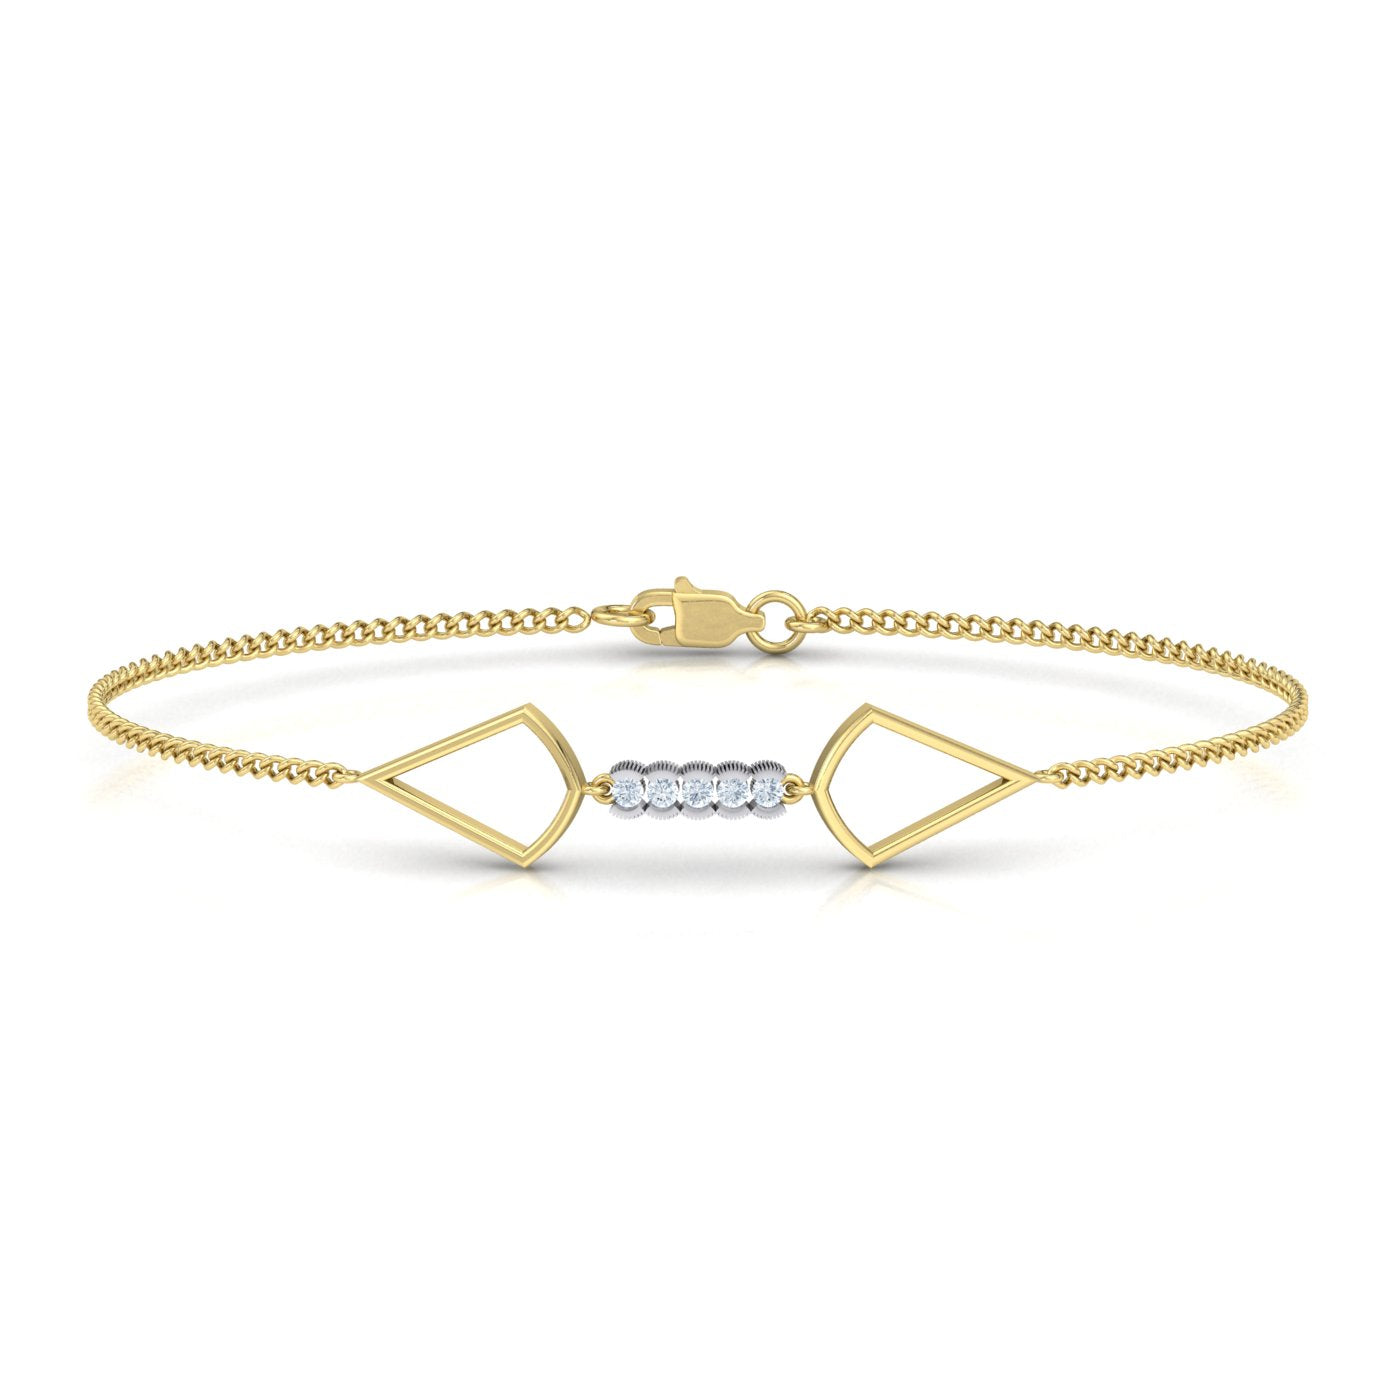 Gold Diamond Bracelet from Alice Herald